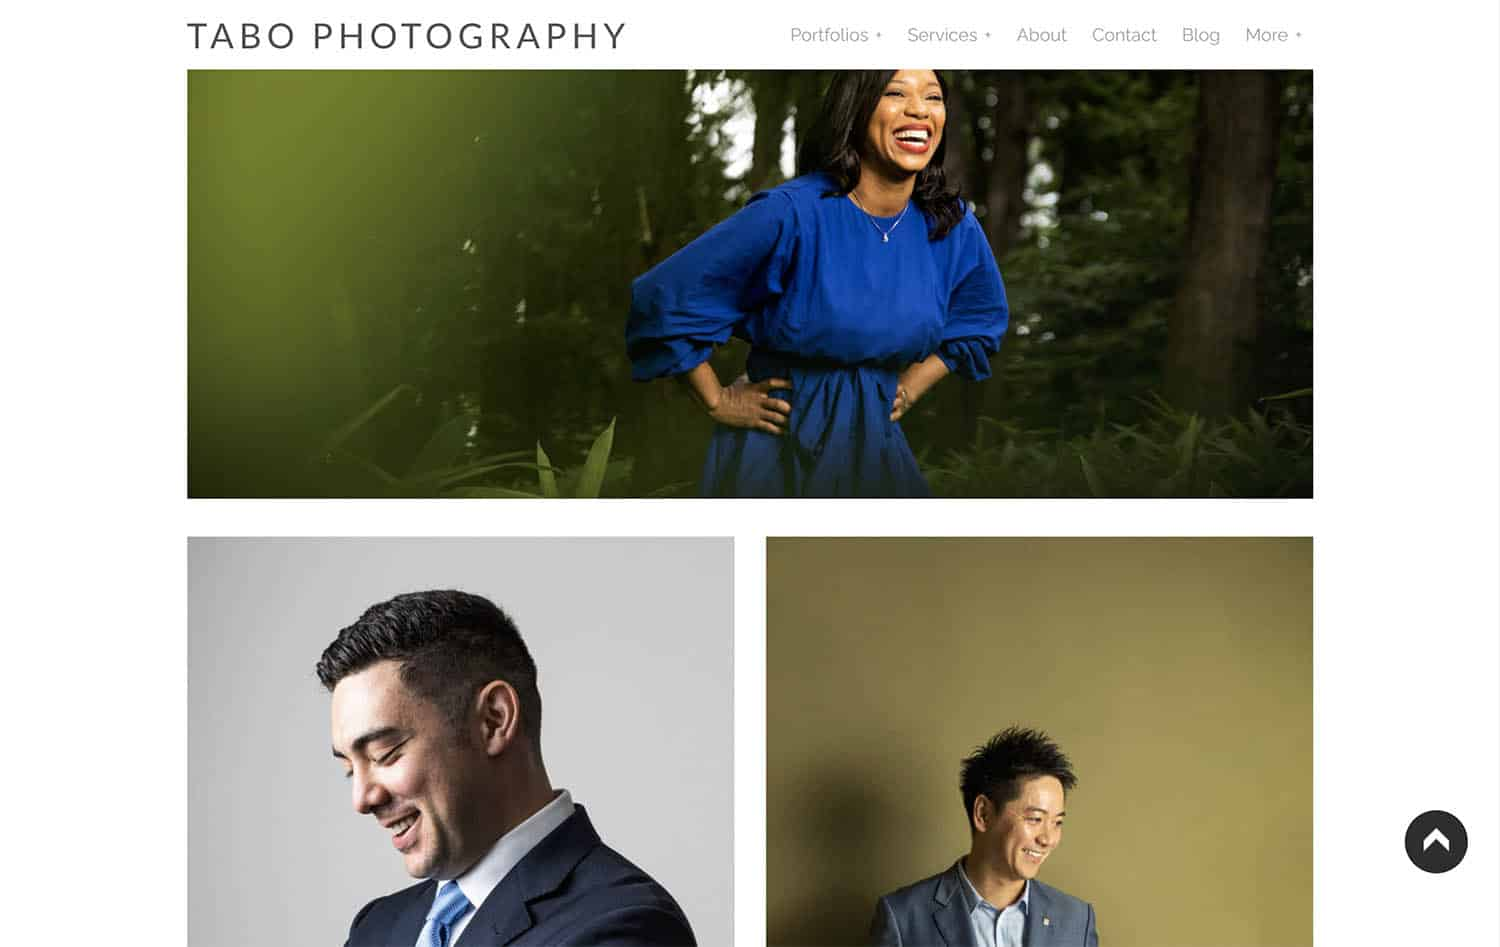 A page on Tabo Photography's website features an environmental portrait of a Black woman in a blue dress; a studio portrait of a white man in a suit; and another studio portrait of an Asian man in a suit.